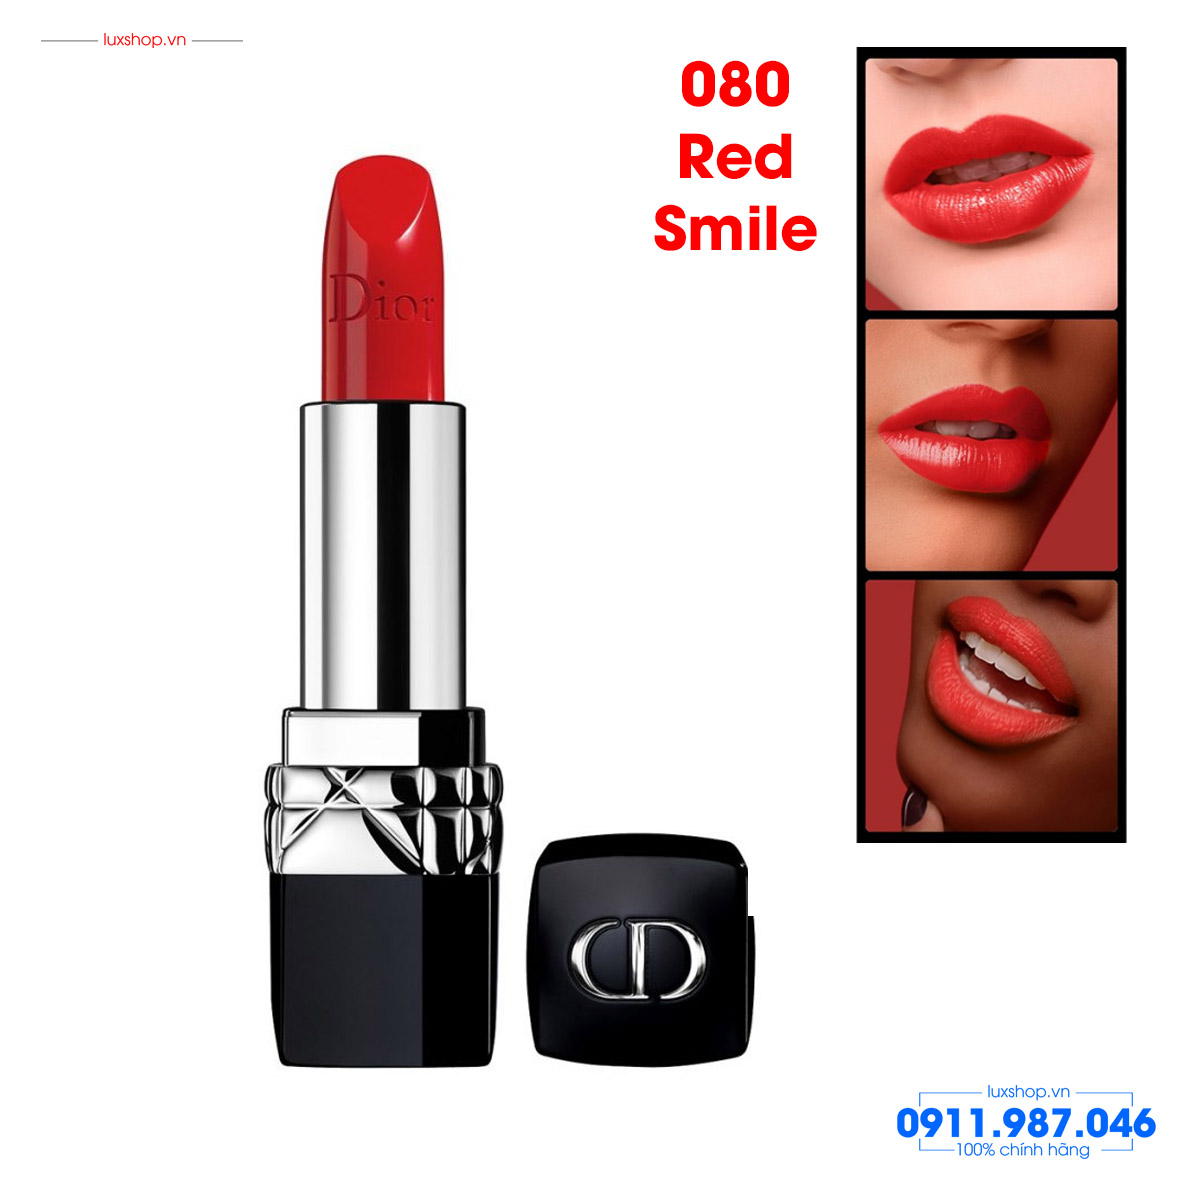 son-moi-dior-080-red-smile-mau-do-tuoi-anh-cam-chinh-hang-phap-101909